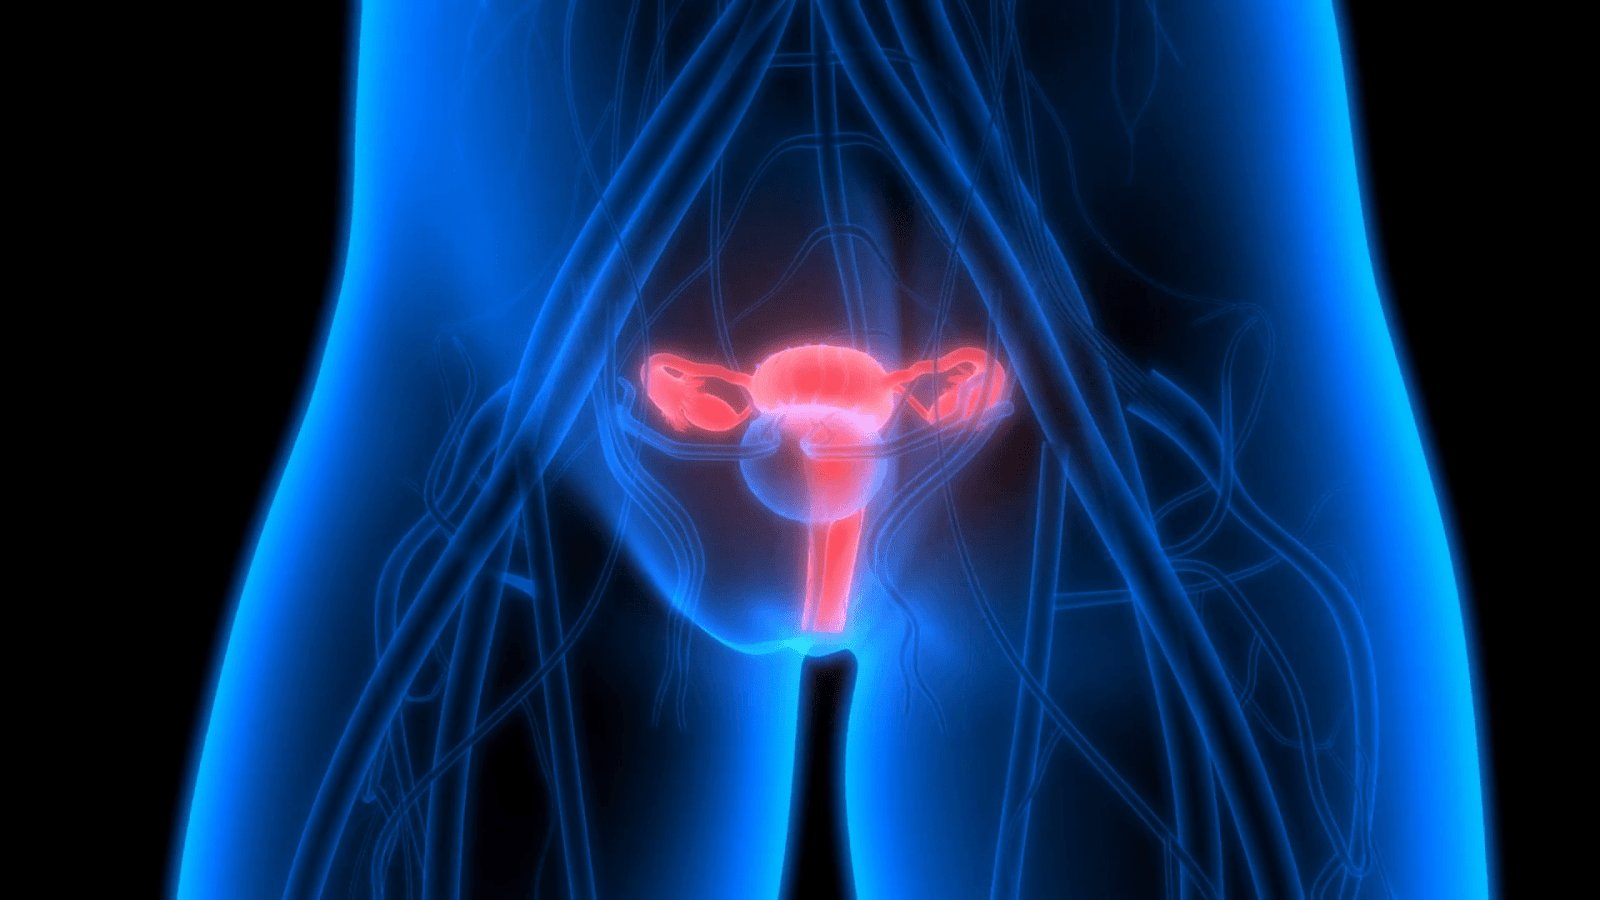 https://i1.wp.com/agronom.guru/wp-content/uploads/2019/10/female-reproductive-system-with-nervous-system-and-urinary-bladder_bxsgtdyxl_thumbnail-full01.png